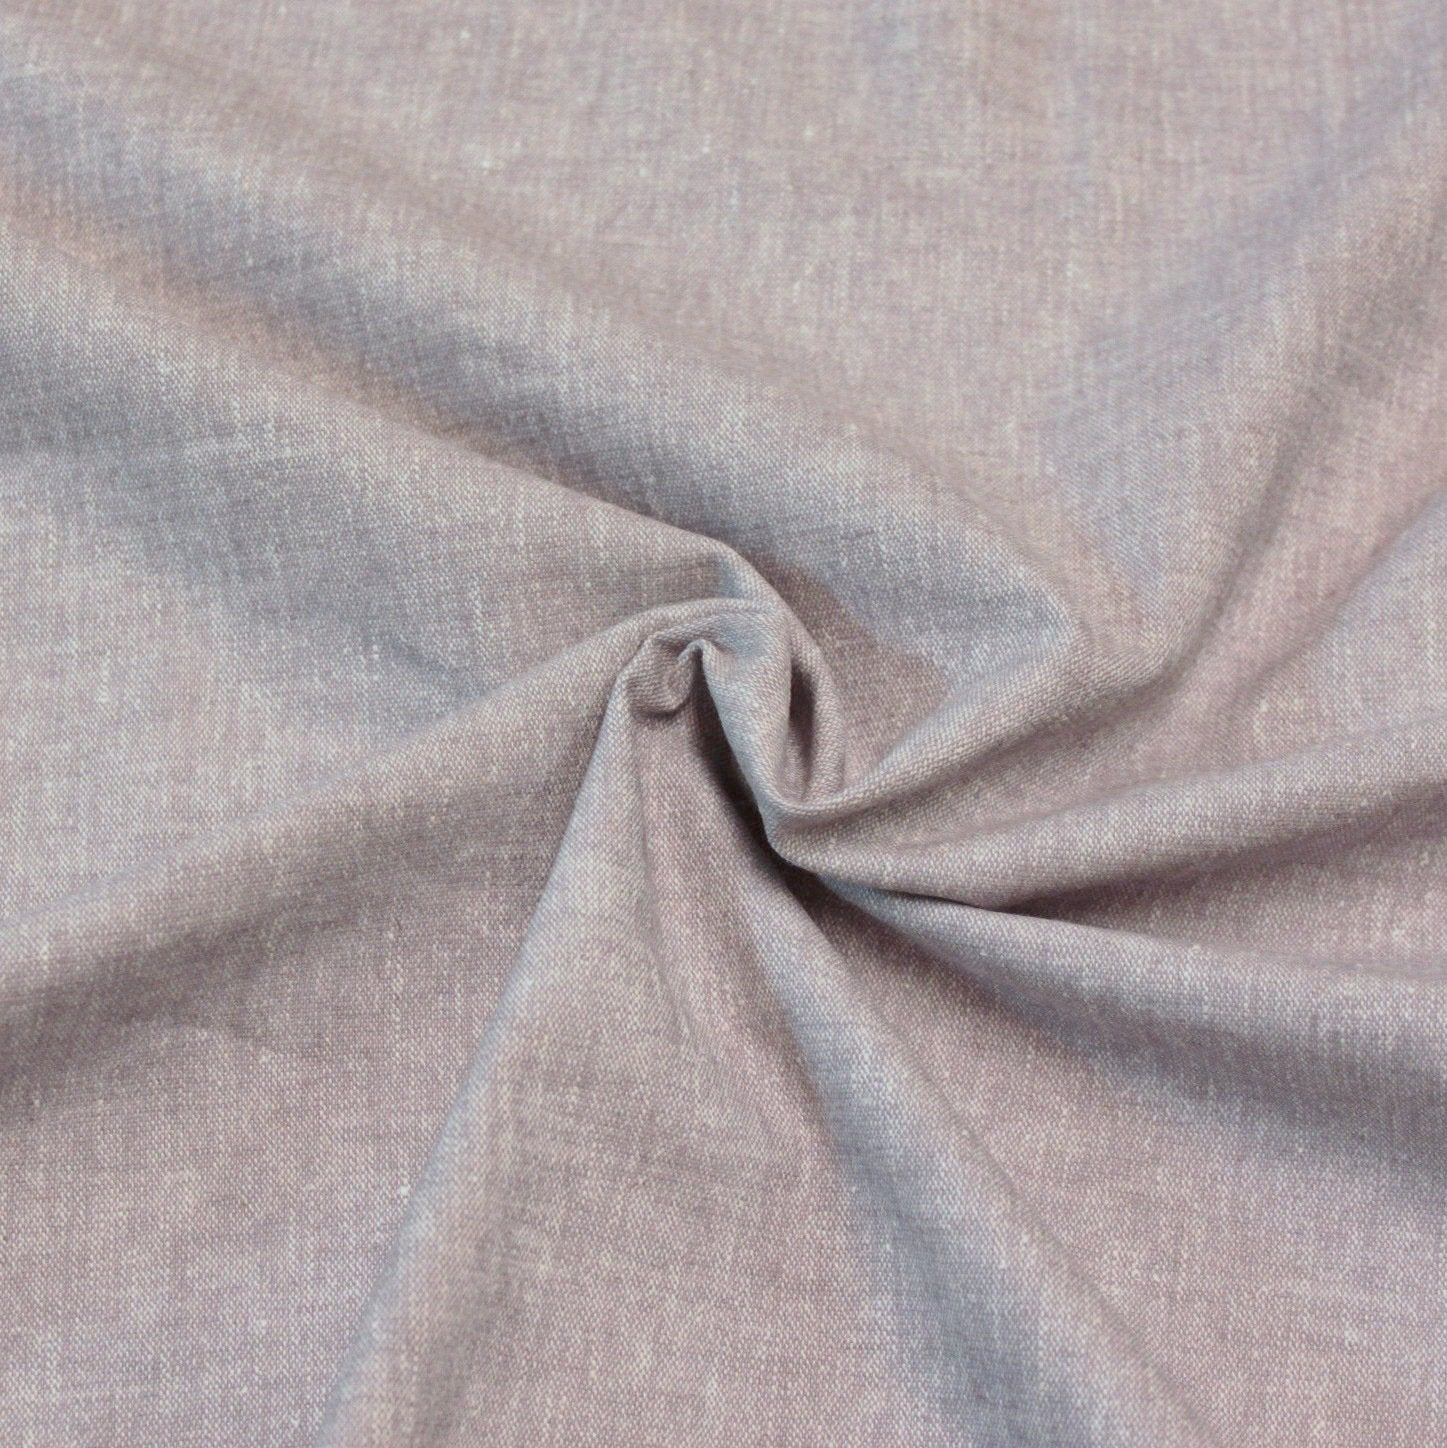 Heathered Light Dusty Purple Medium Weight Stretch Linen - Raspberry Creek Fabrics Knit Fabric